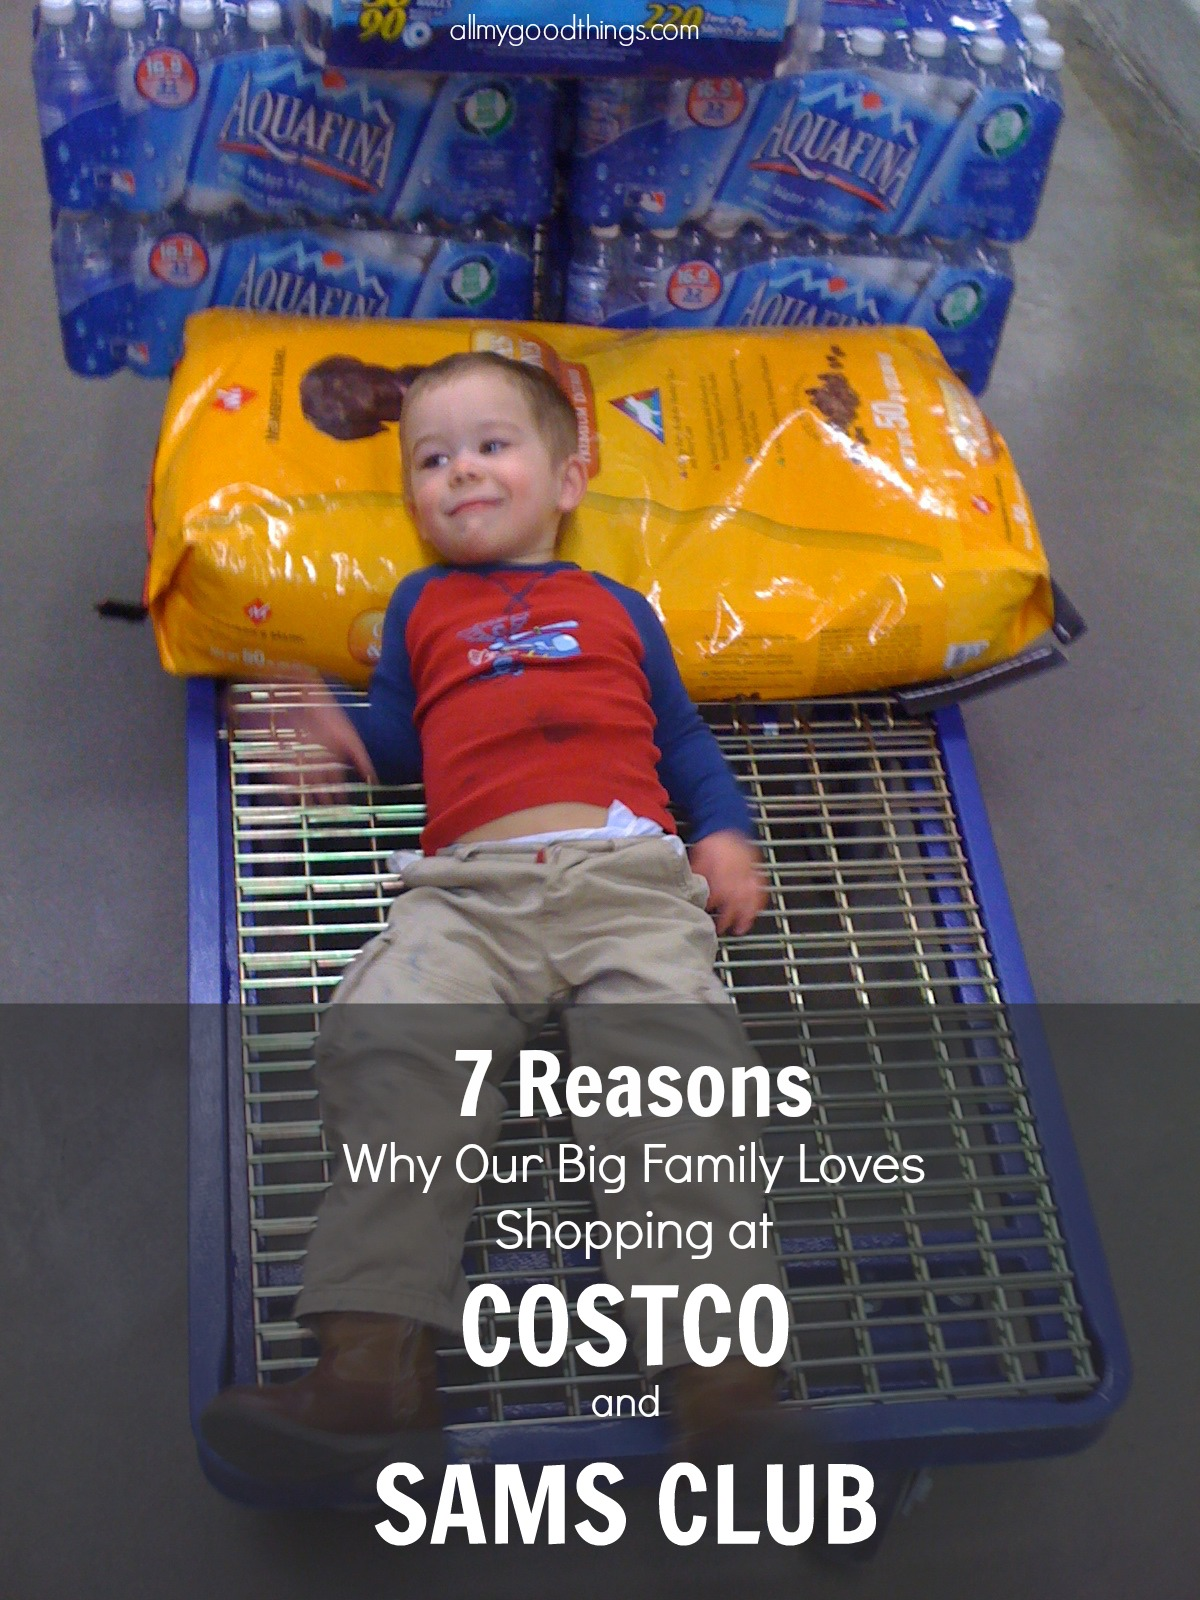 Reasons Why Our Big Family Loves Shopping at Costco and SAMS